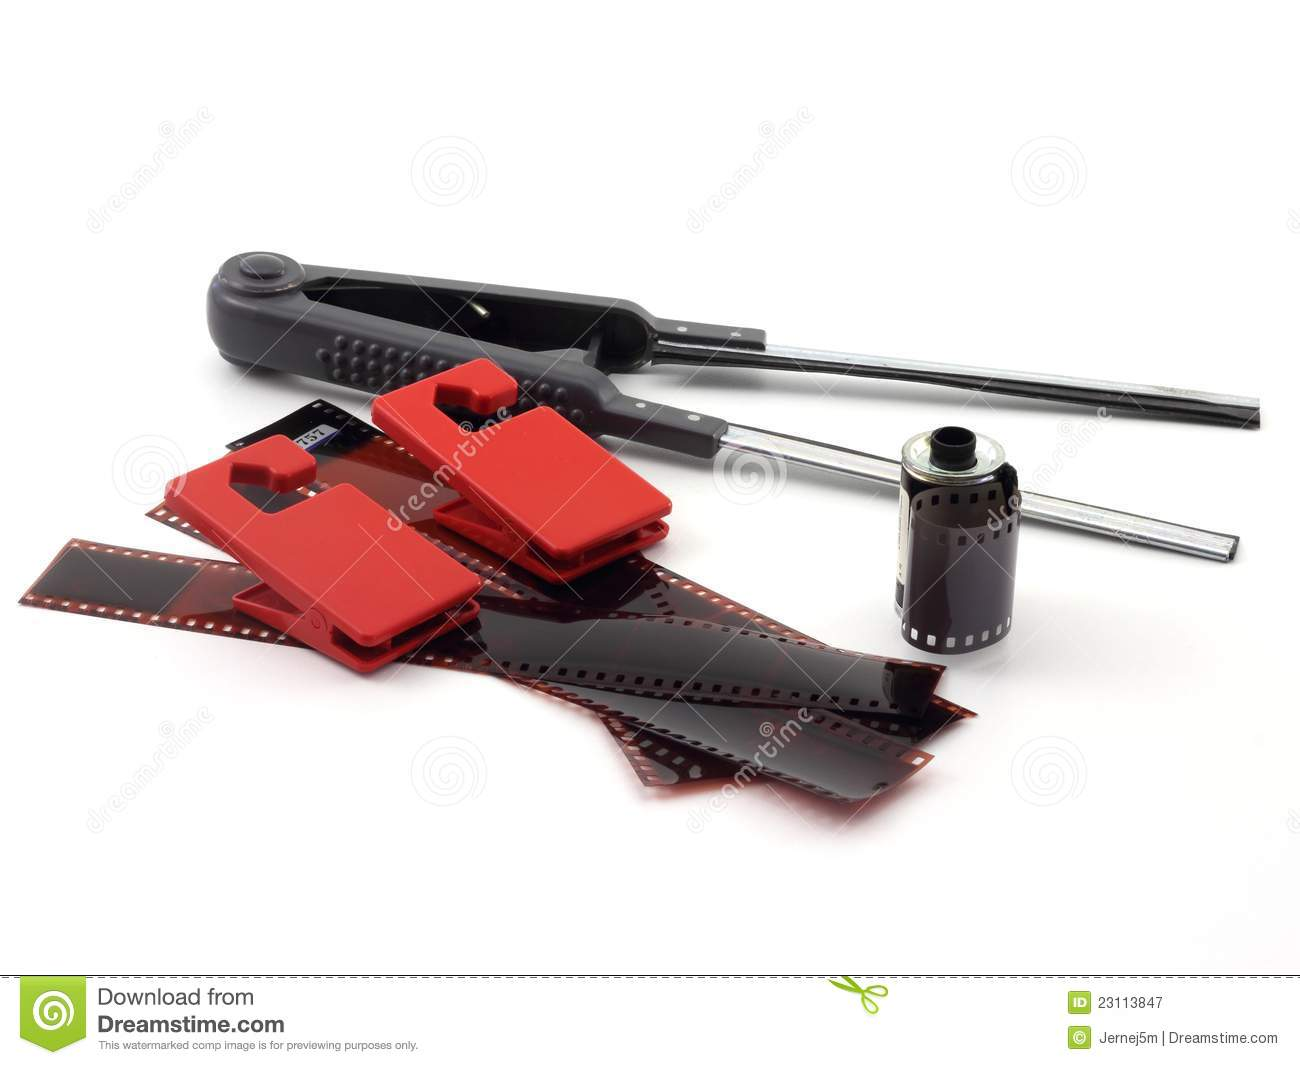 Royalty Free Stock Photography: Photo equipment for developing film: dreamstime.com/royalty-free-stock-photography-photo-equipment...